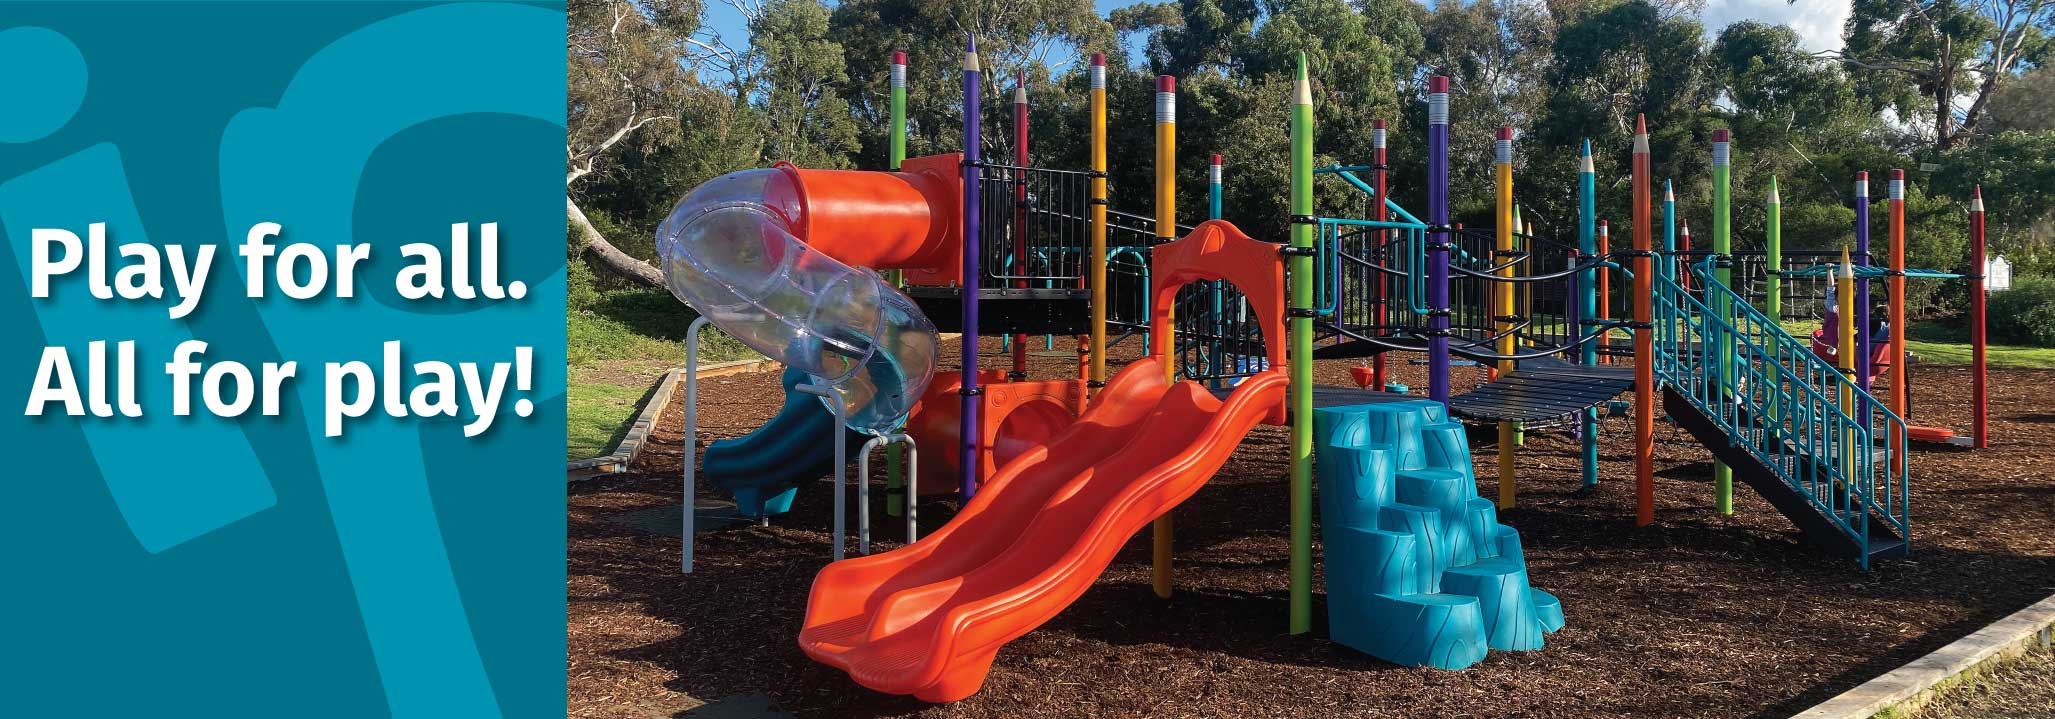 Council playground equipment